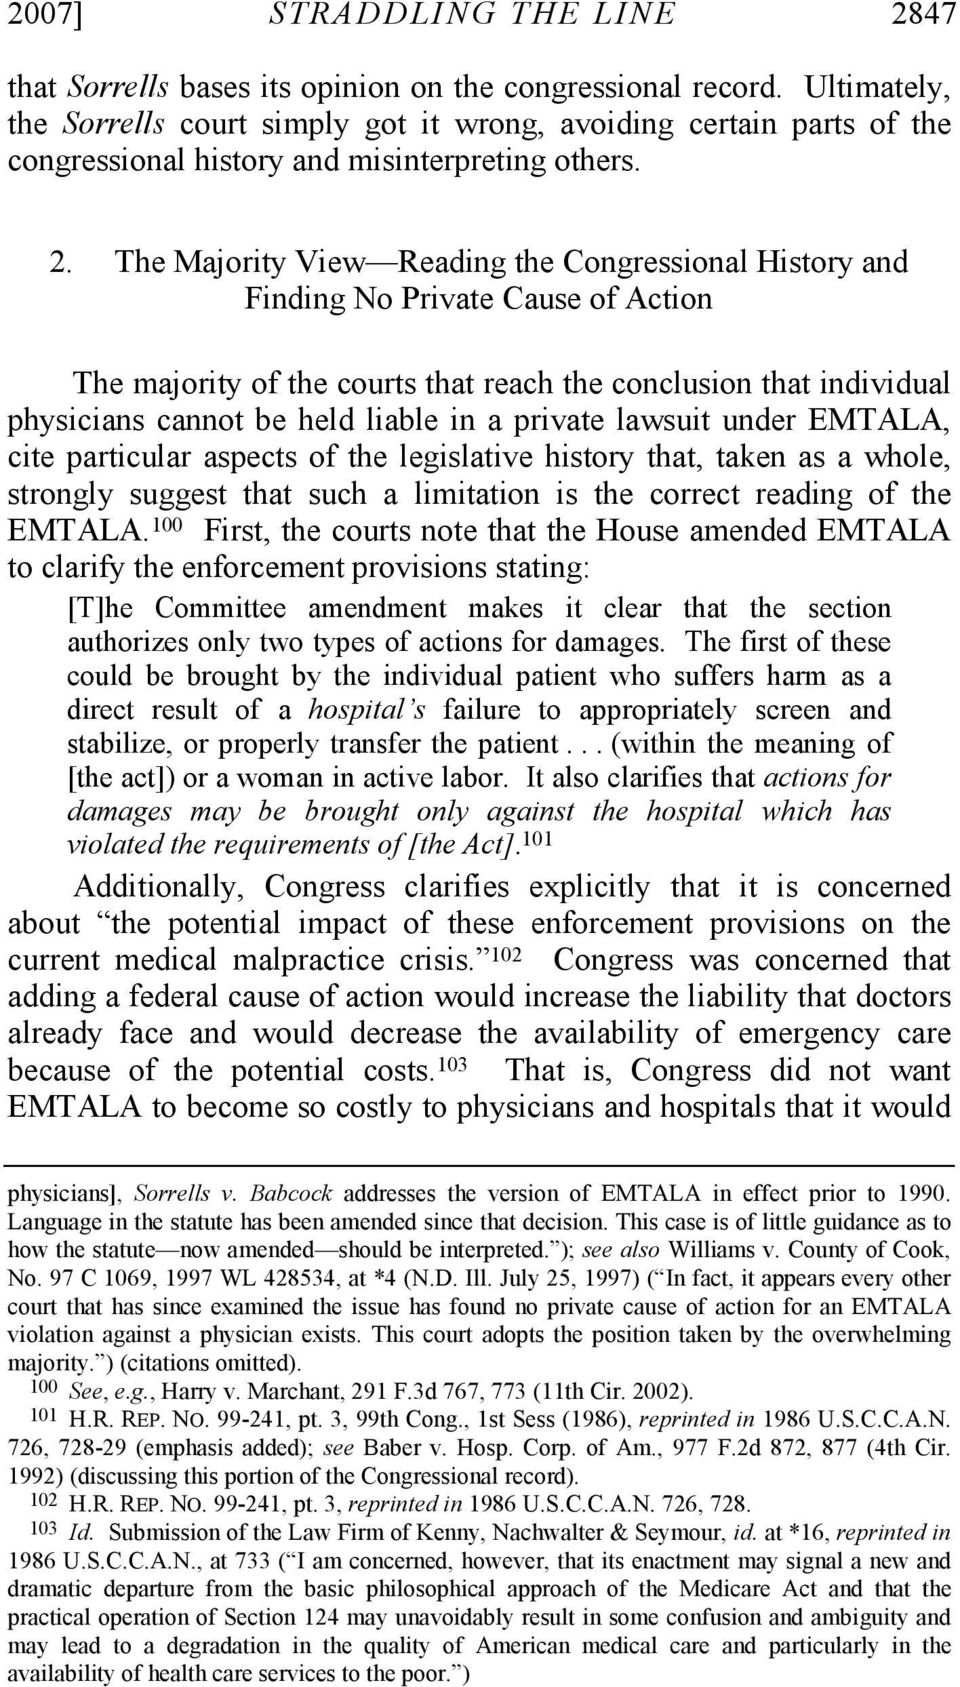 The Majority View Reading the Congressional History and Finding No Private Cause of Action The majority of the courts that reach the conclusion that individual physicians cannot be held liable in a